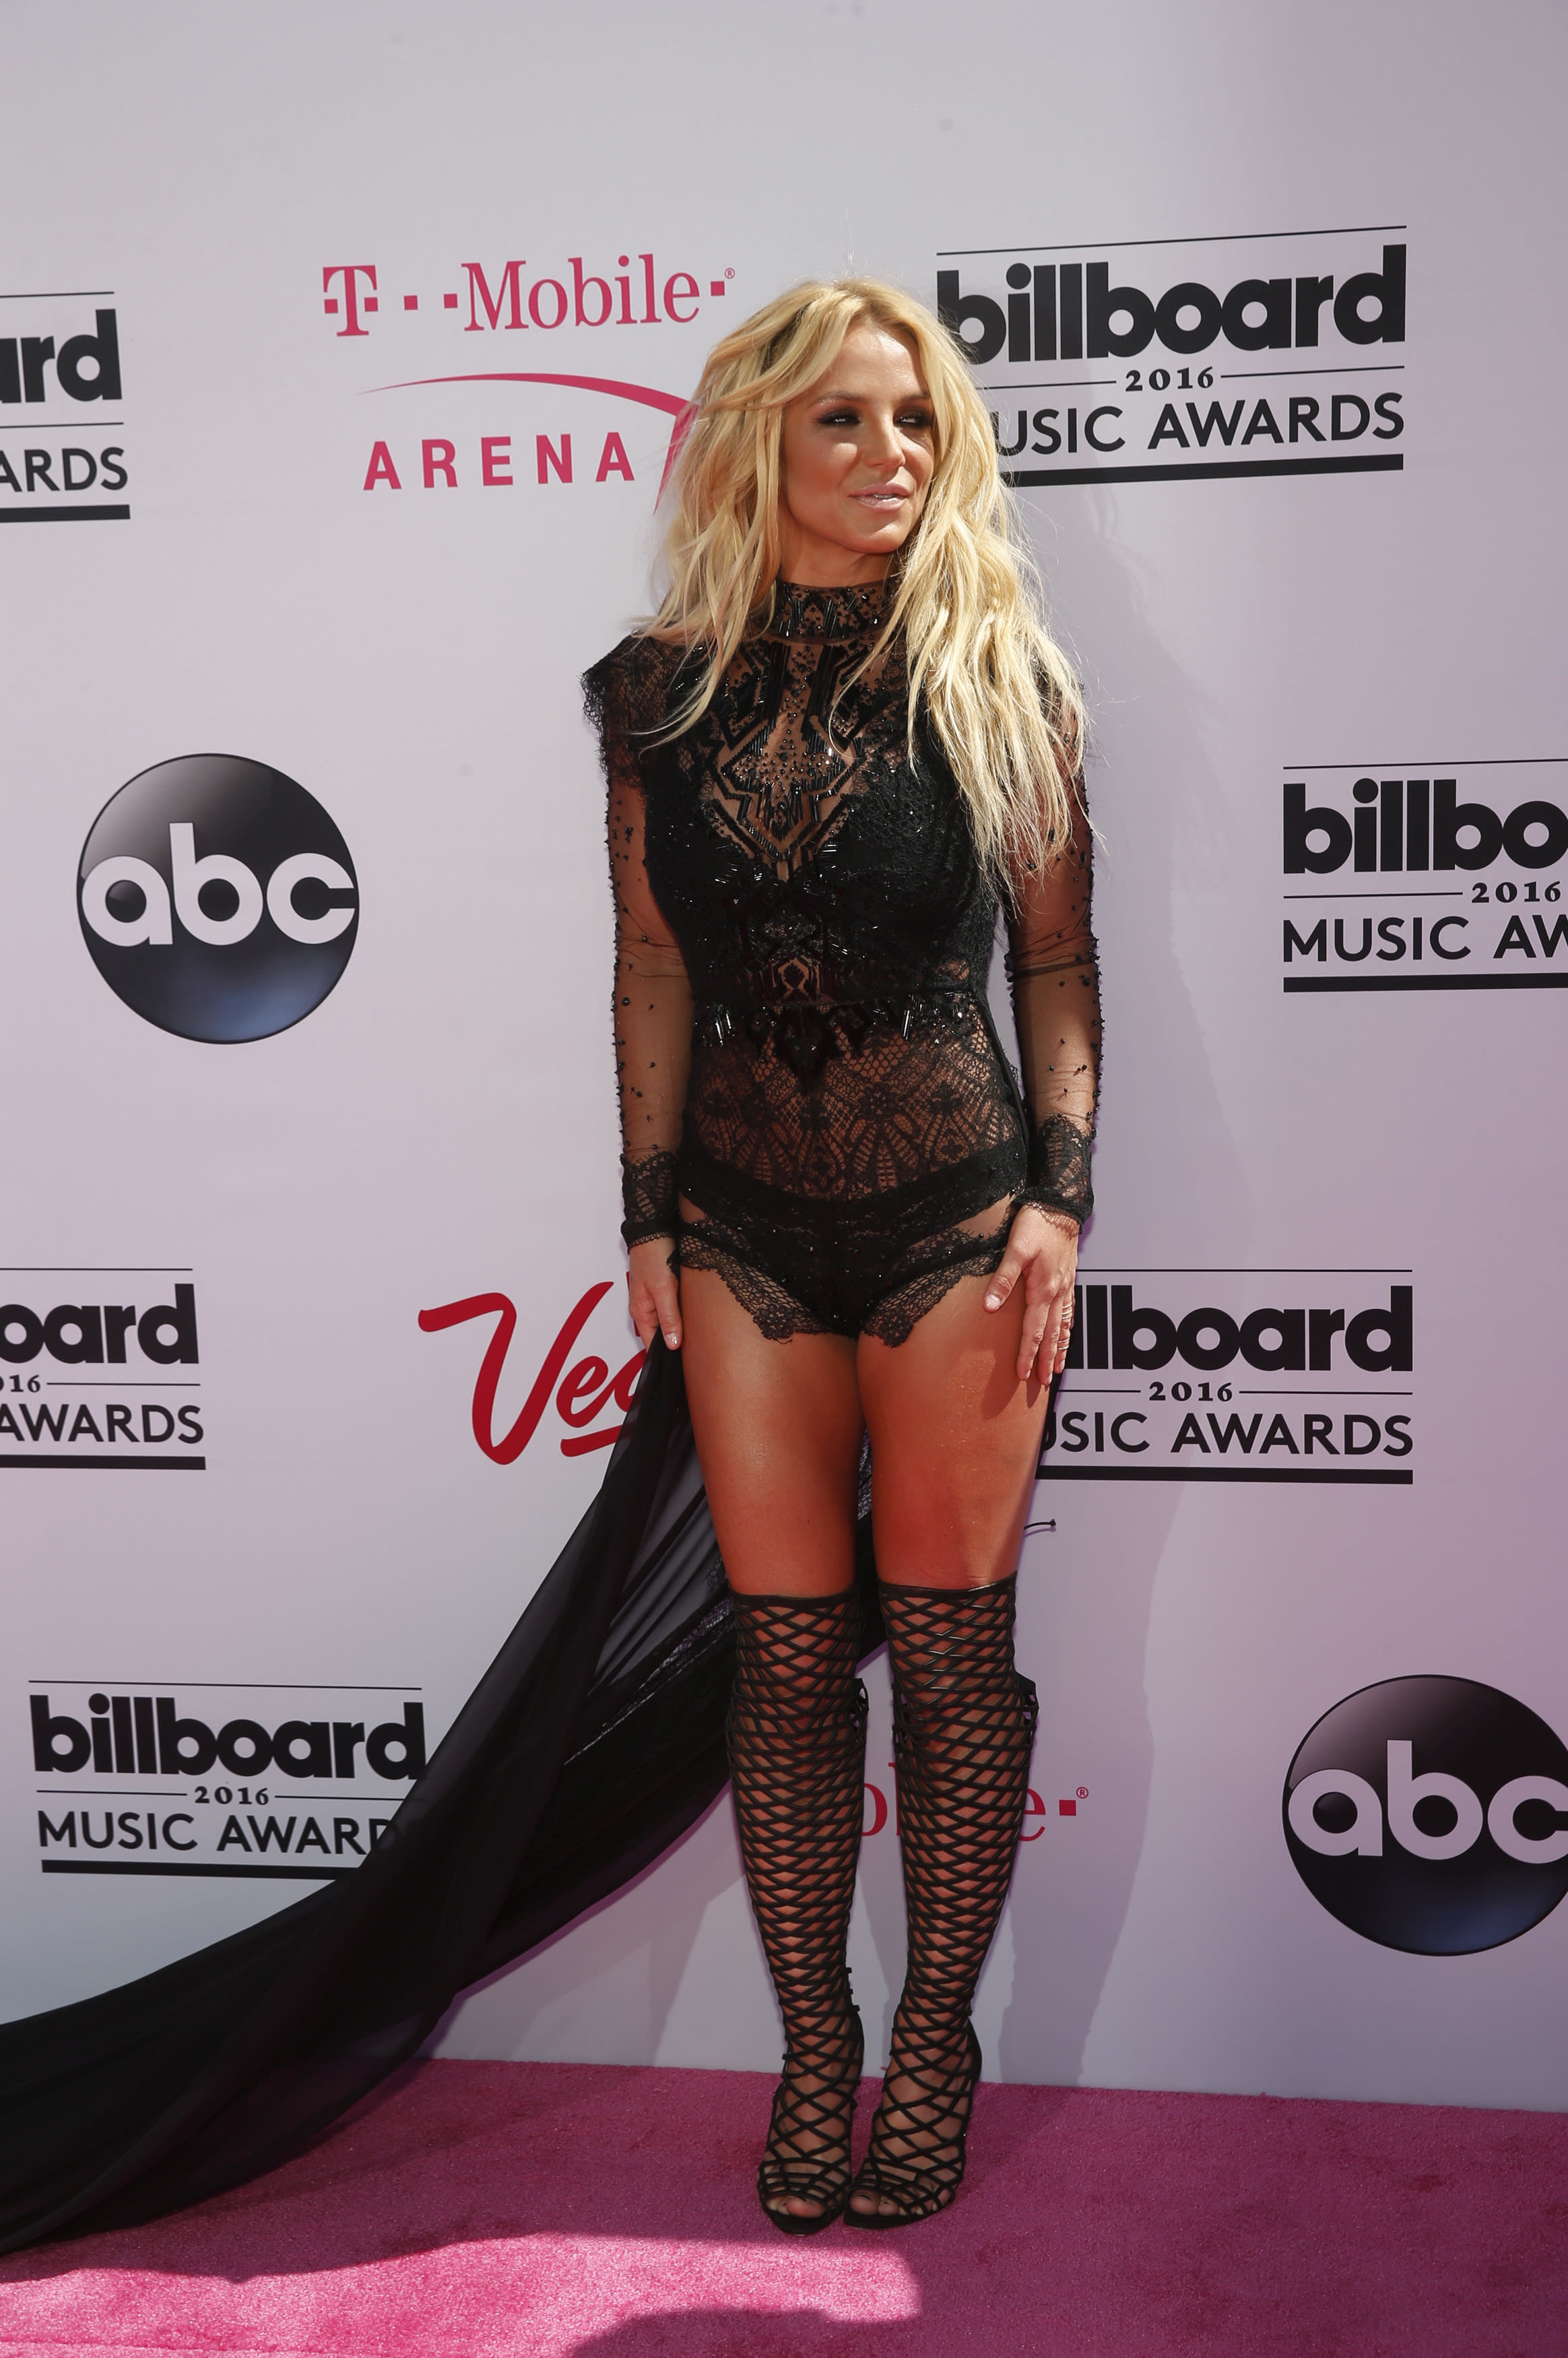 Britney posing on the red carpet at the 2016 Billboard Music Awards in a lacy see-through dress and matching boots